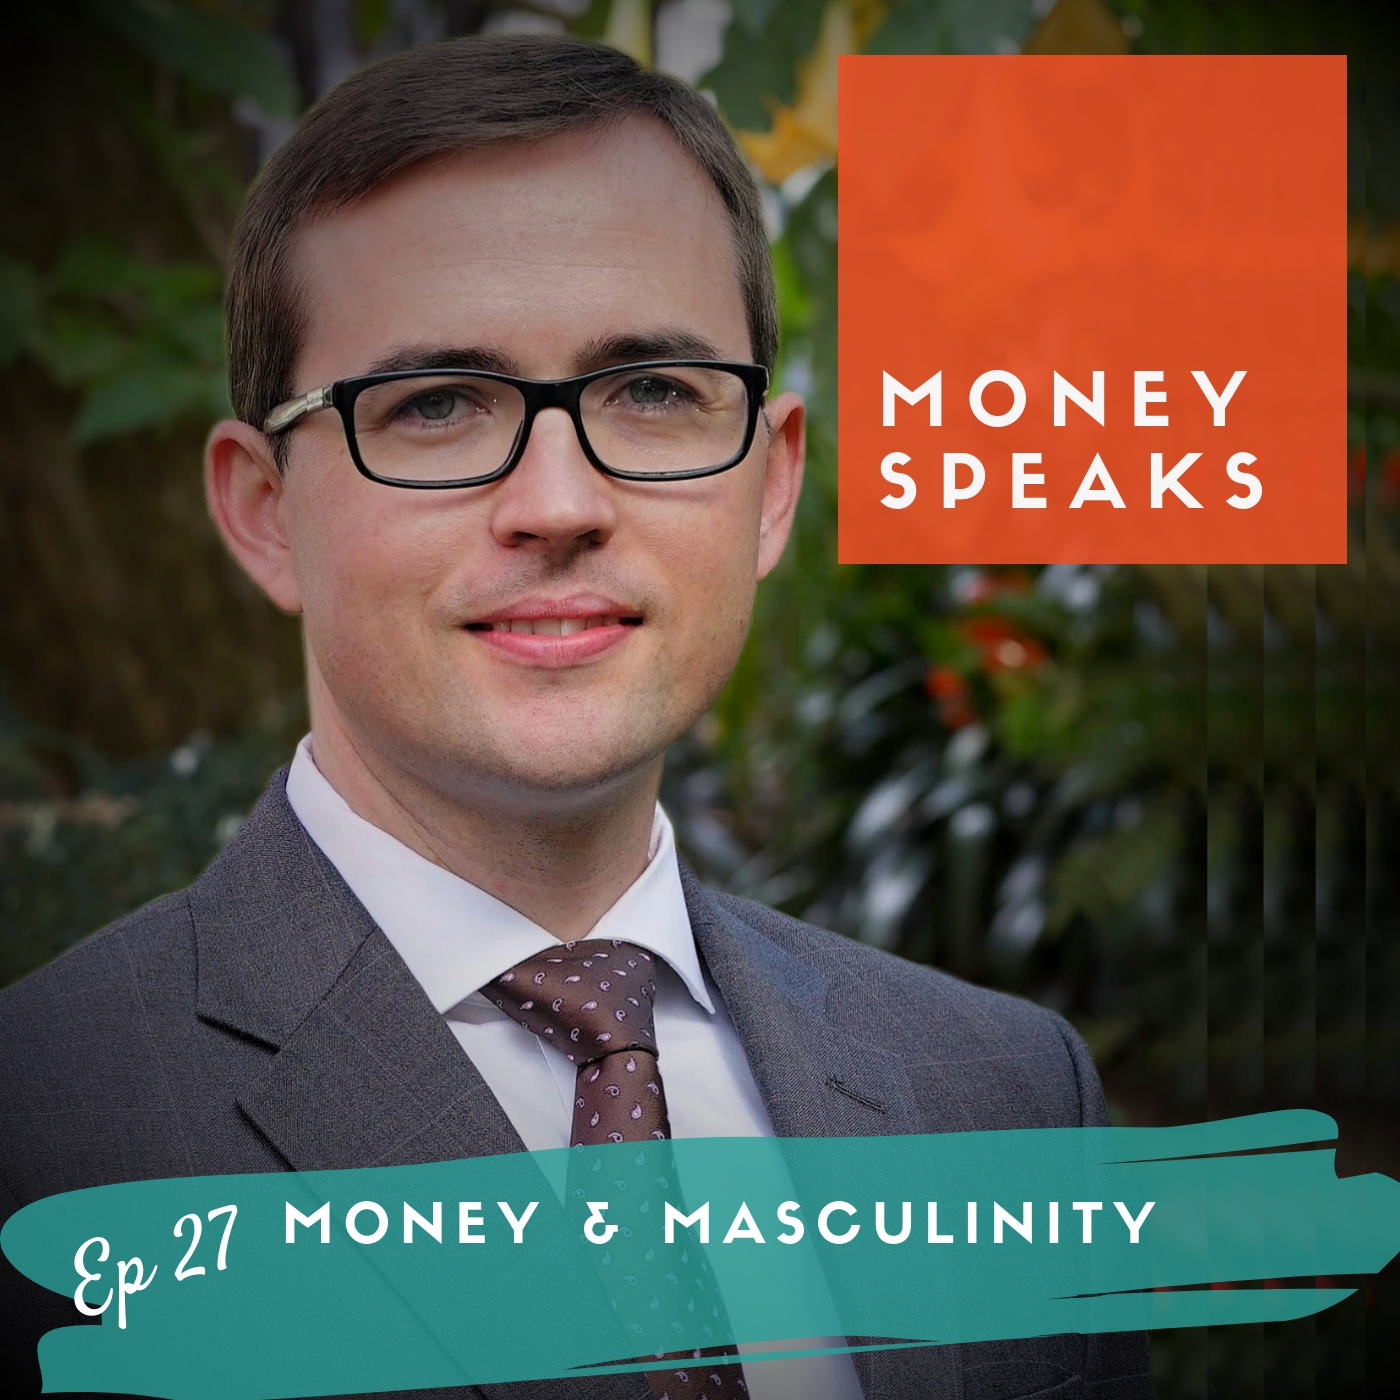 EP 27 // Steve Bealey: Talking about money and masculinity